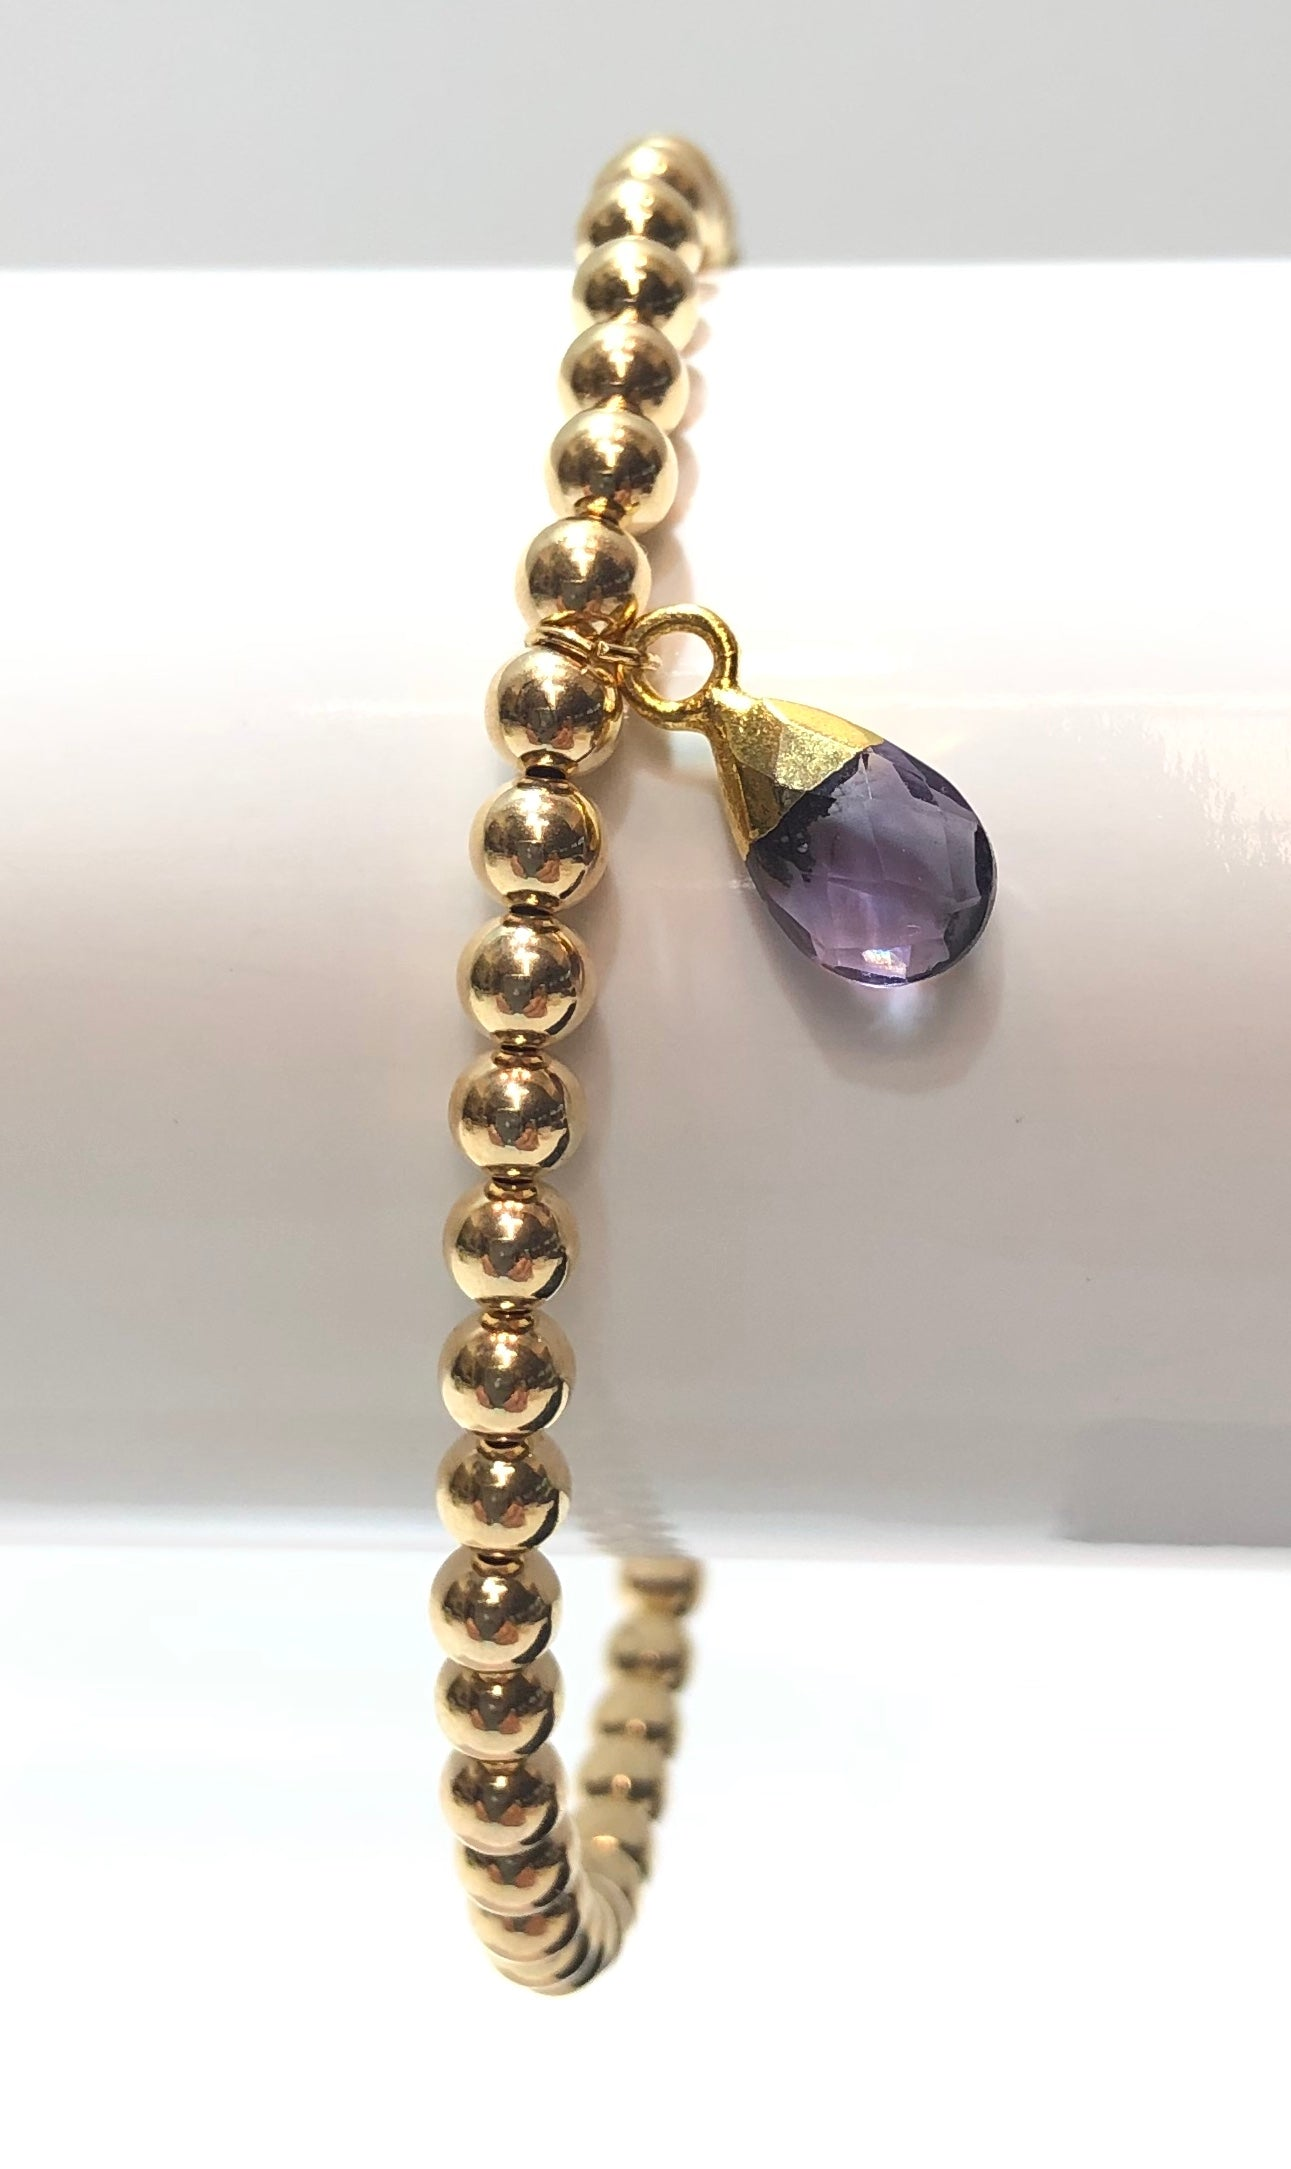 4mm 14k Gold Filled Bracelet with Colored Hanging Amethyst Jewel Charm